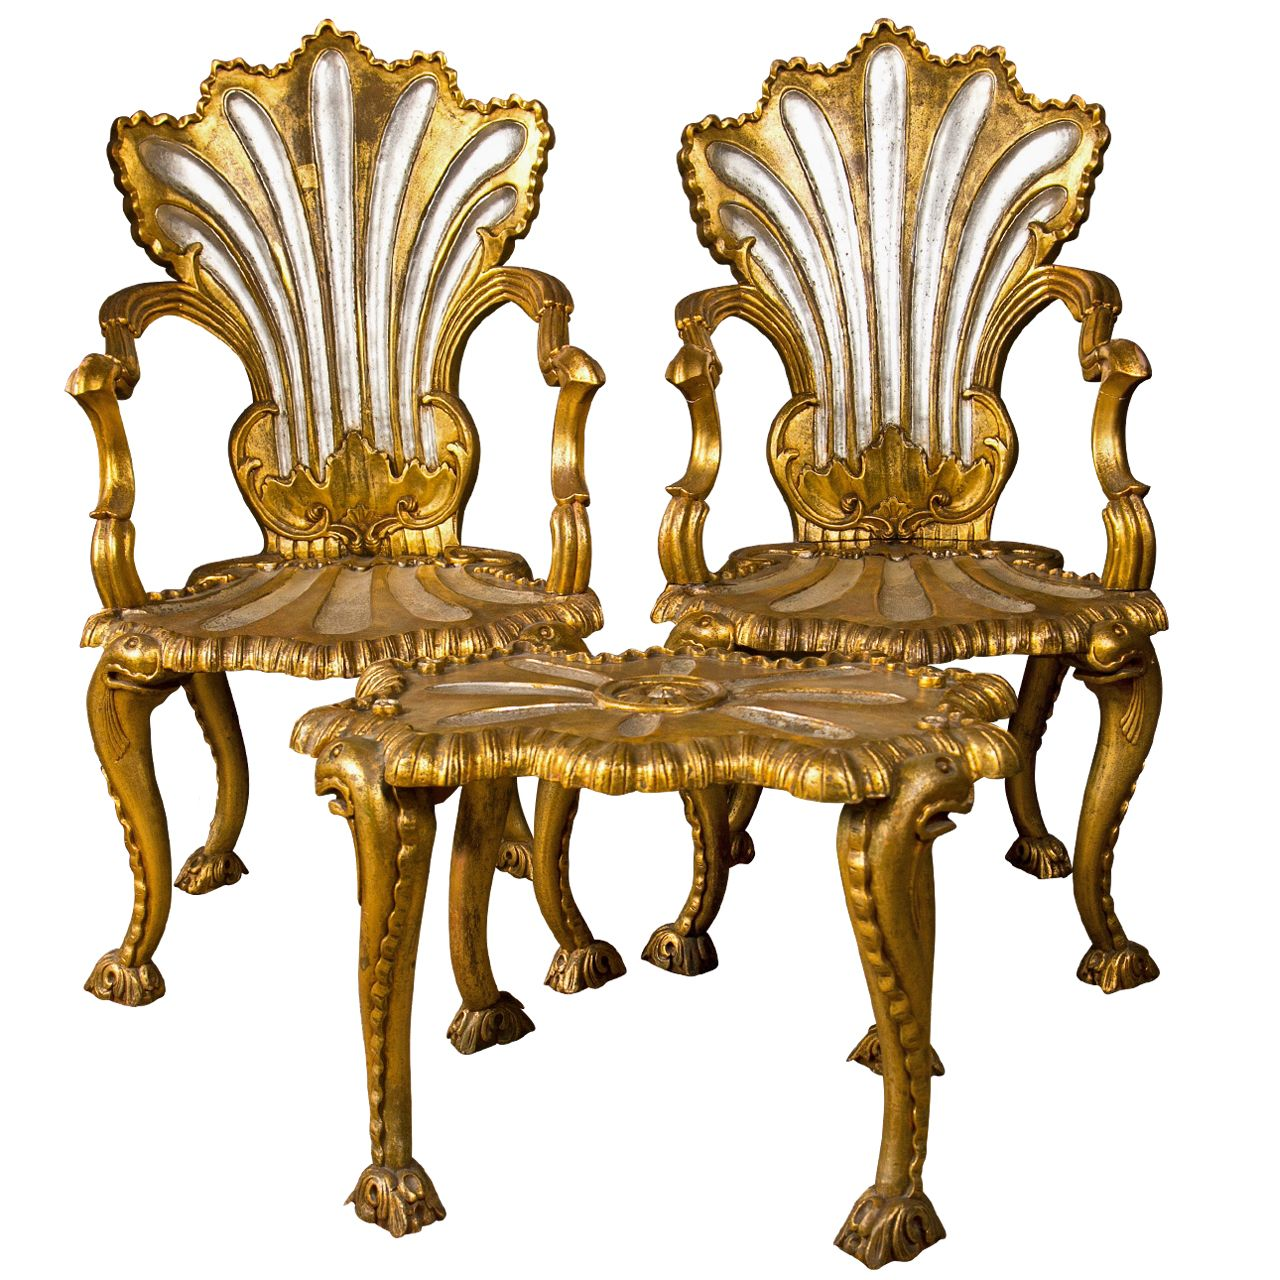 1stdibs | Spectacular French Rococo Style Armchairs U0026 Stool By Jansen